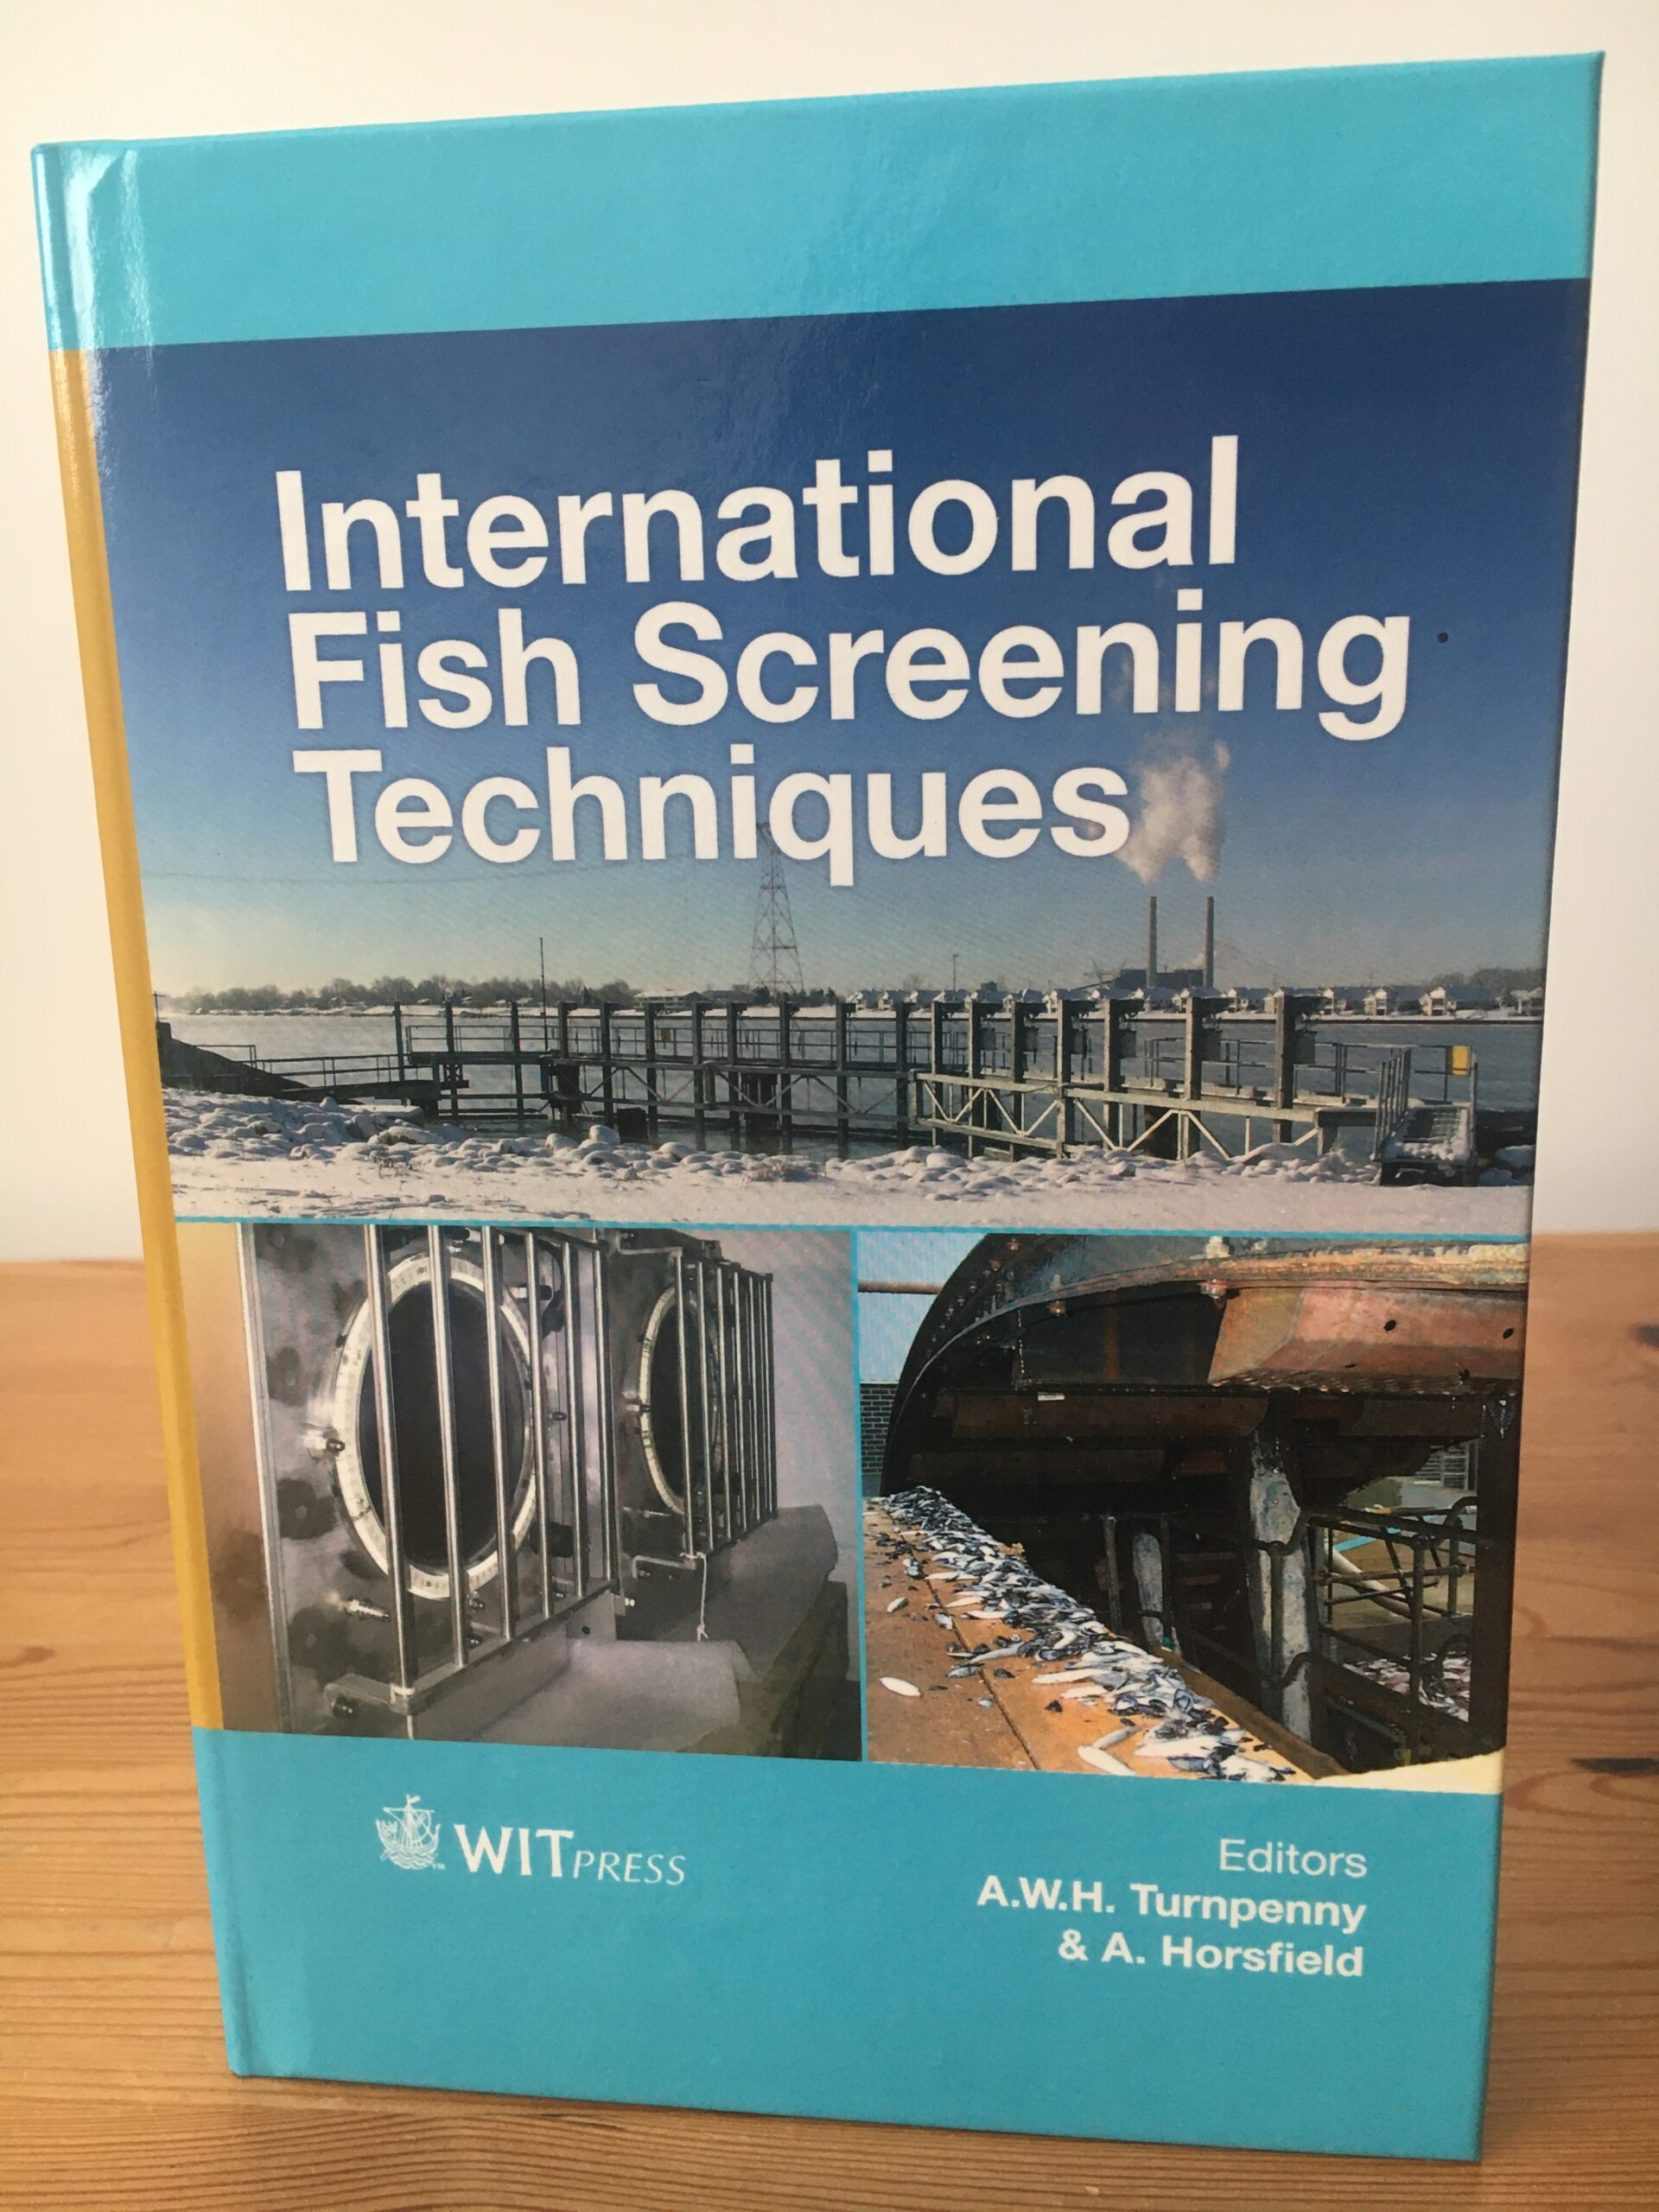 International Fish Screening Techniques